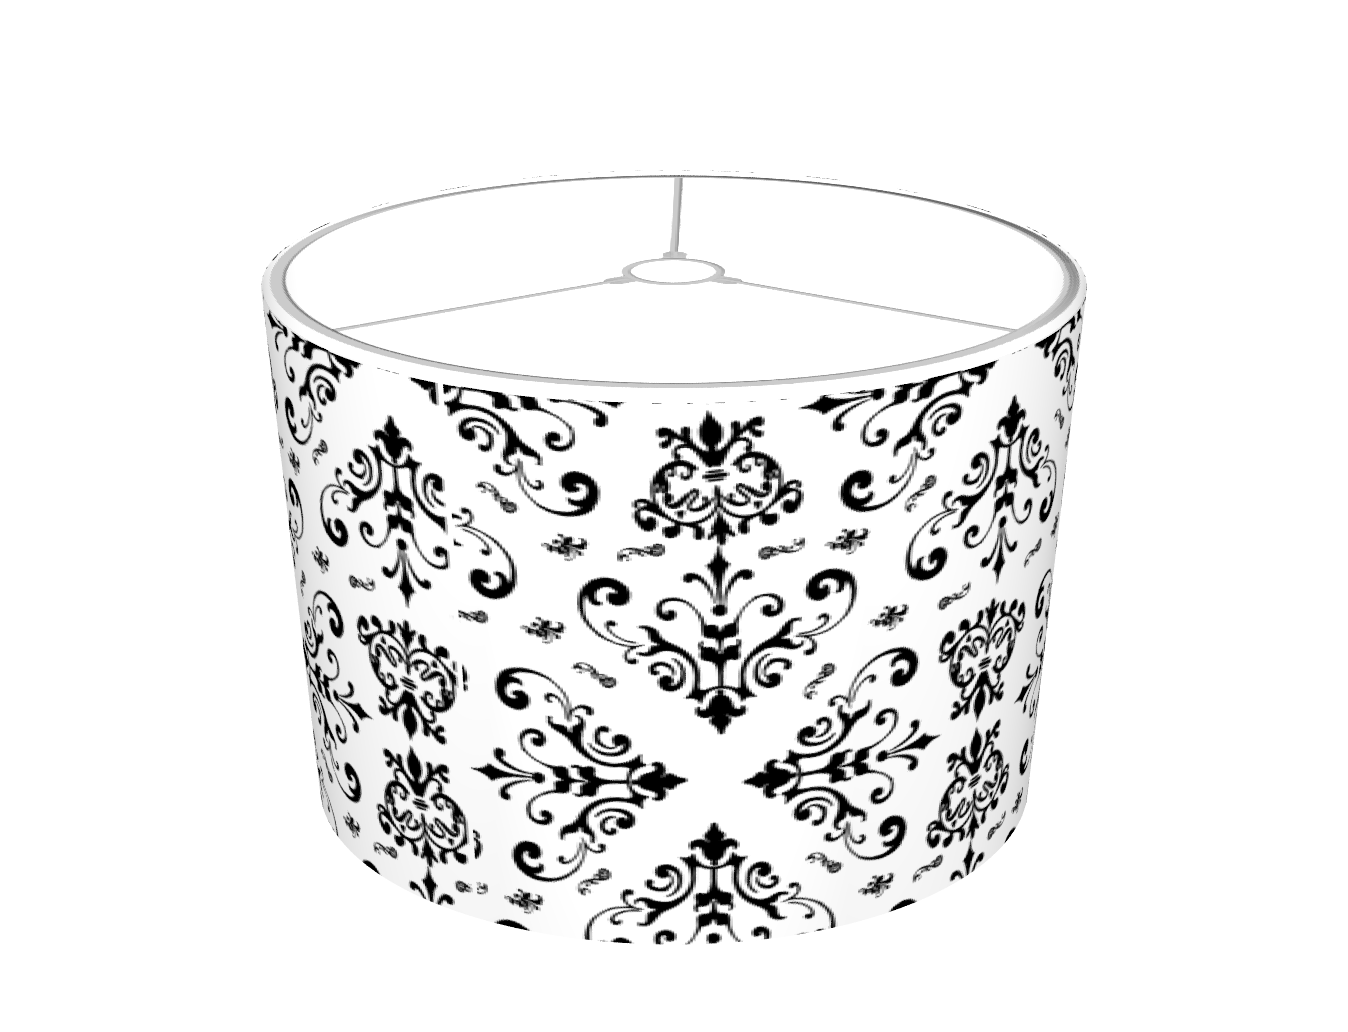 Mysoti dpeagreendesigns black white damask 23 lampshade black white damask 23 lampshade aloadofball Image collections